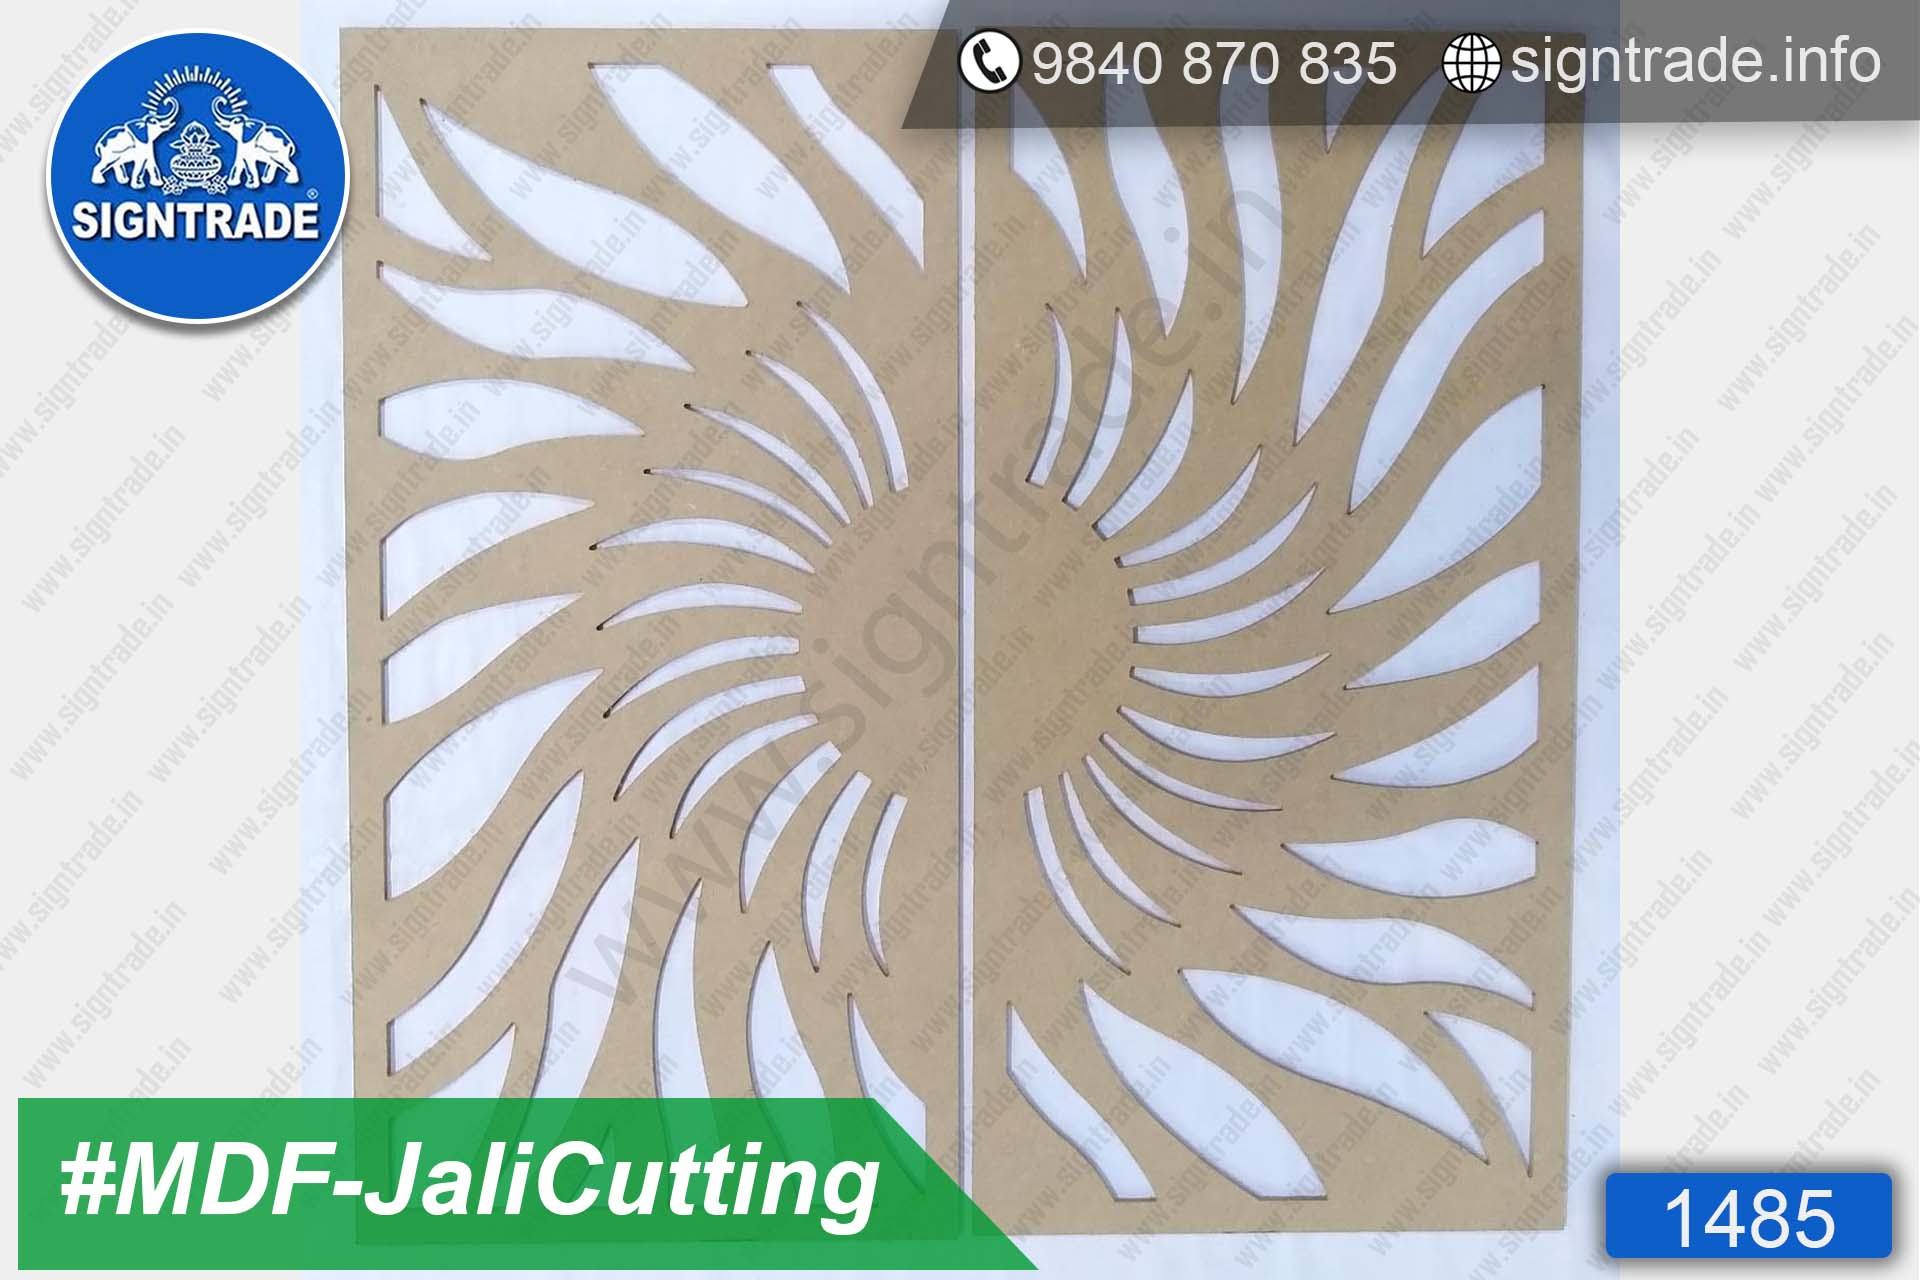 MDF Flower Cutting, MDF Jali Cutting - SIGNTRADE - MDF, Wood CNC Cutting Service in Chennai